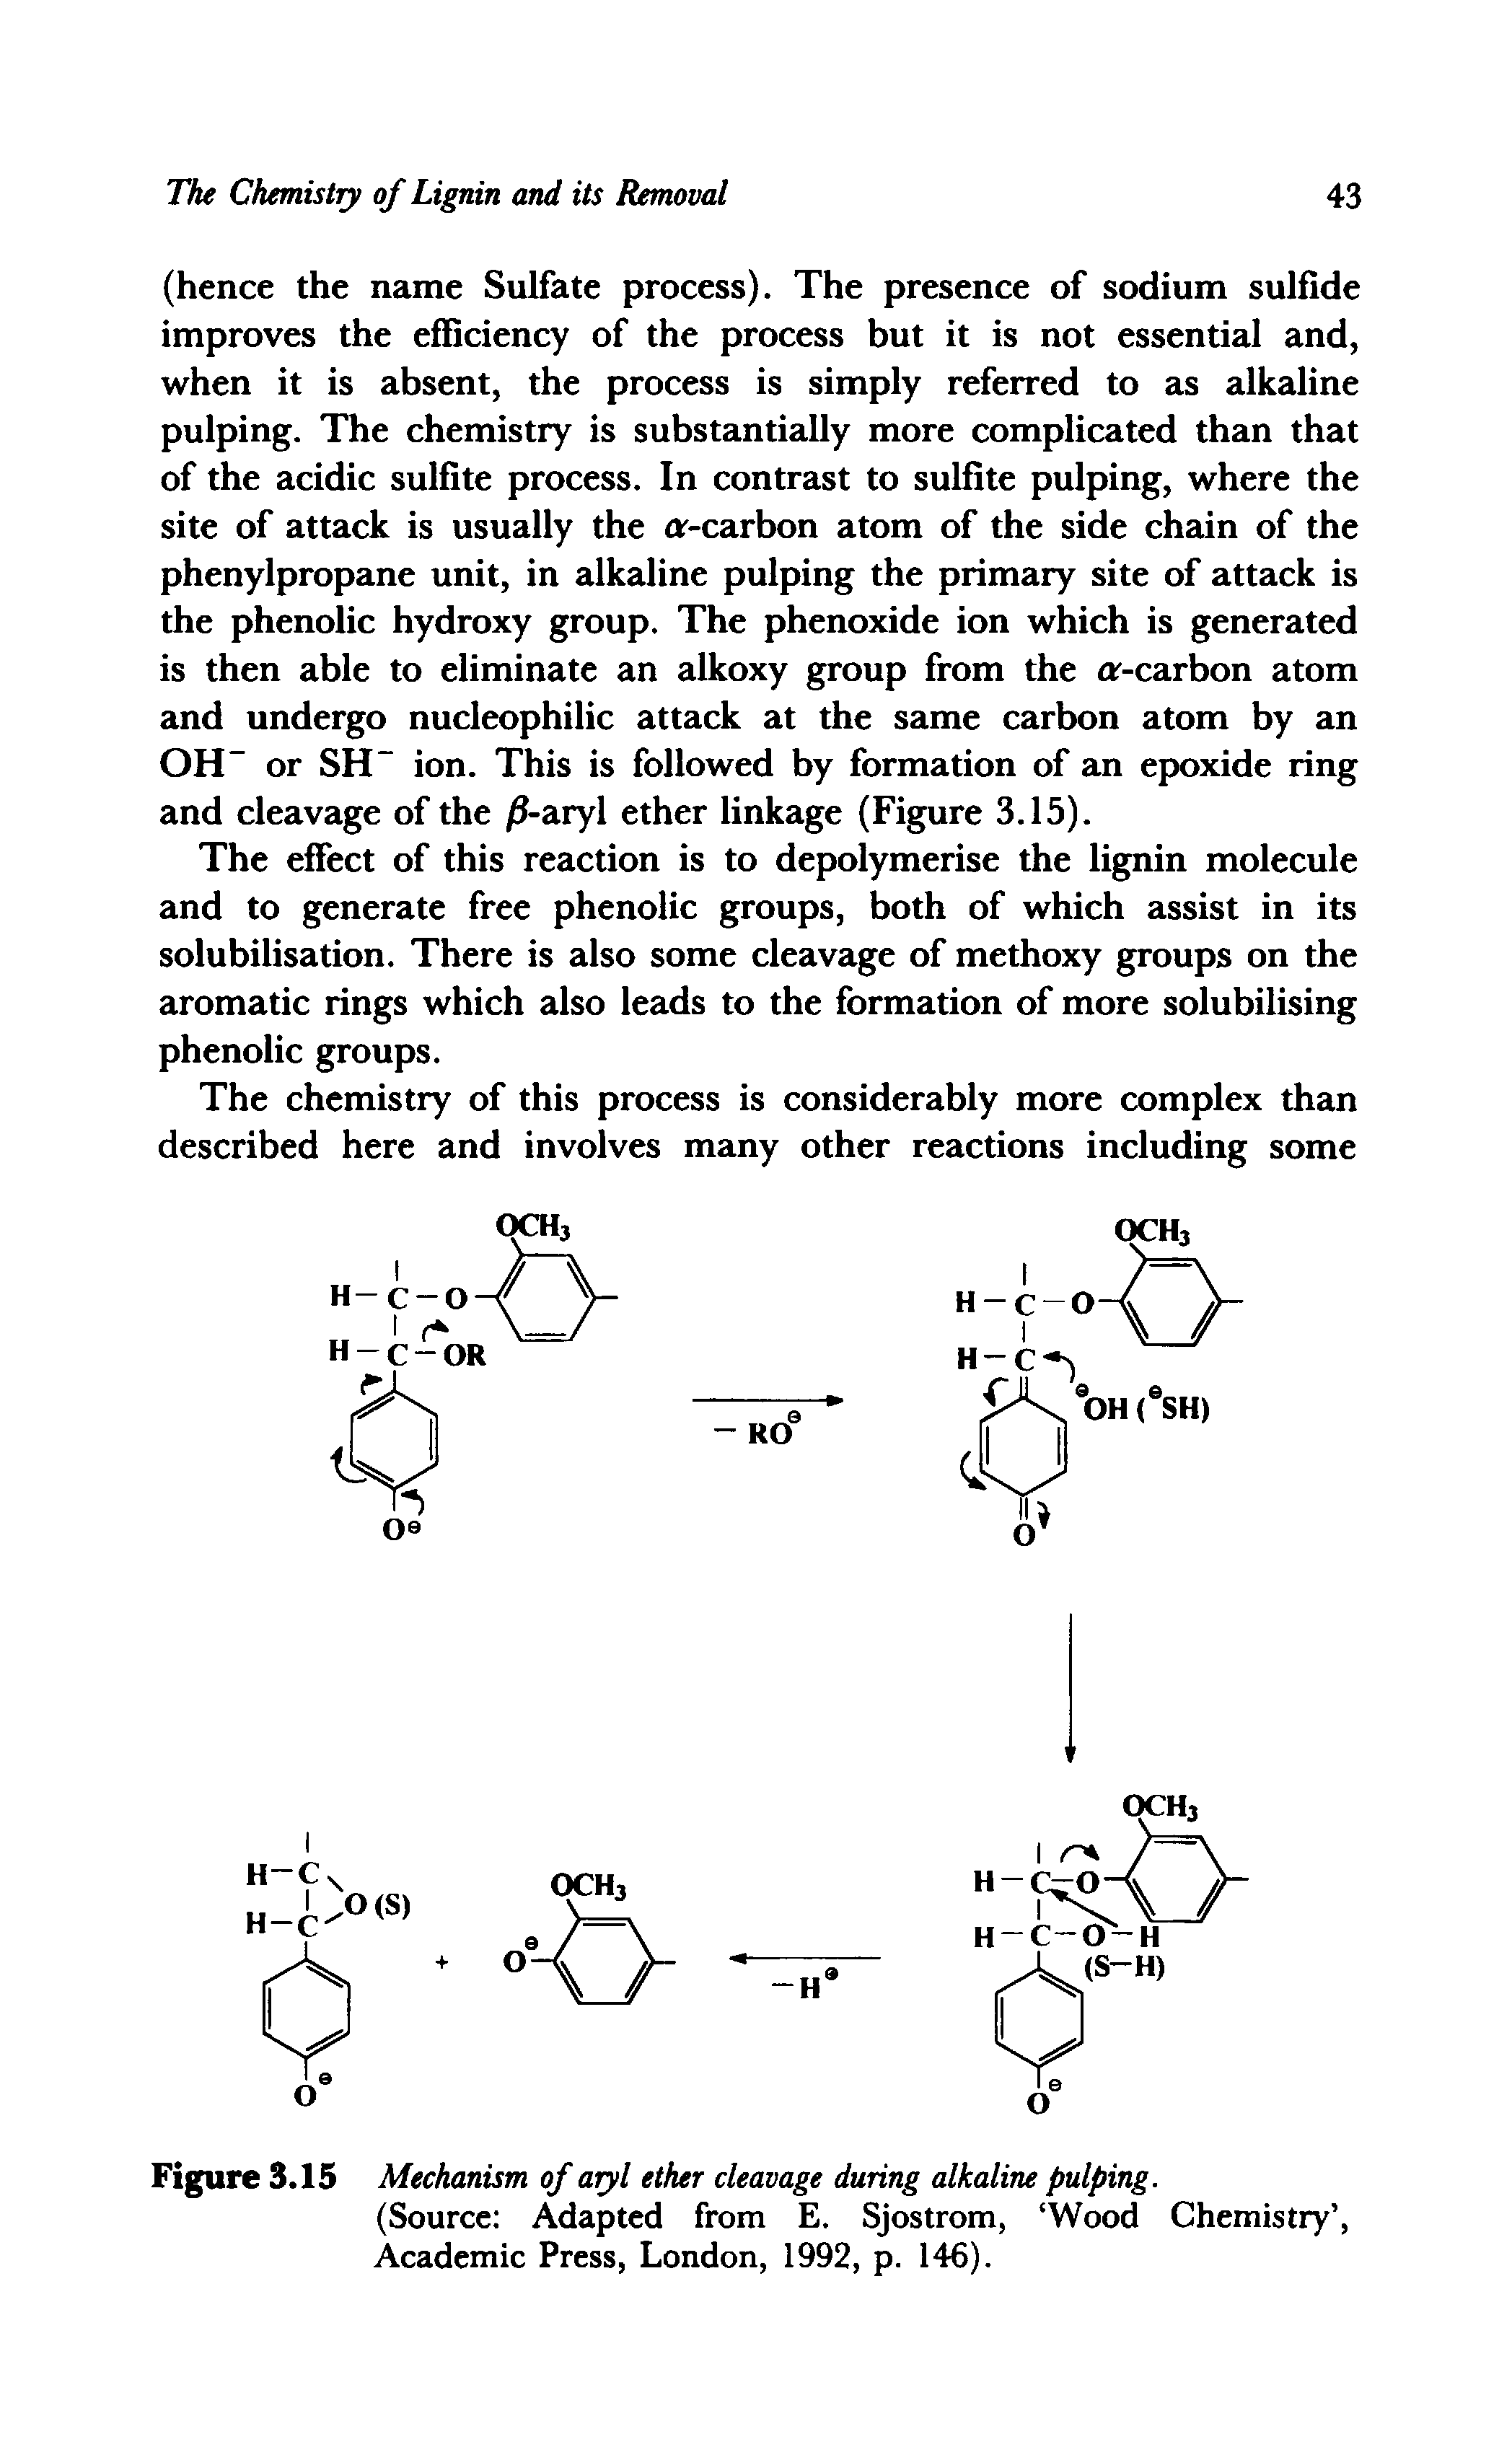 Figure 3.15 Mechanism of aryl ether cleavage during alkaline pulping.